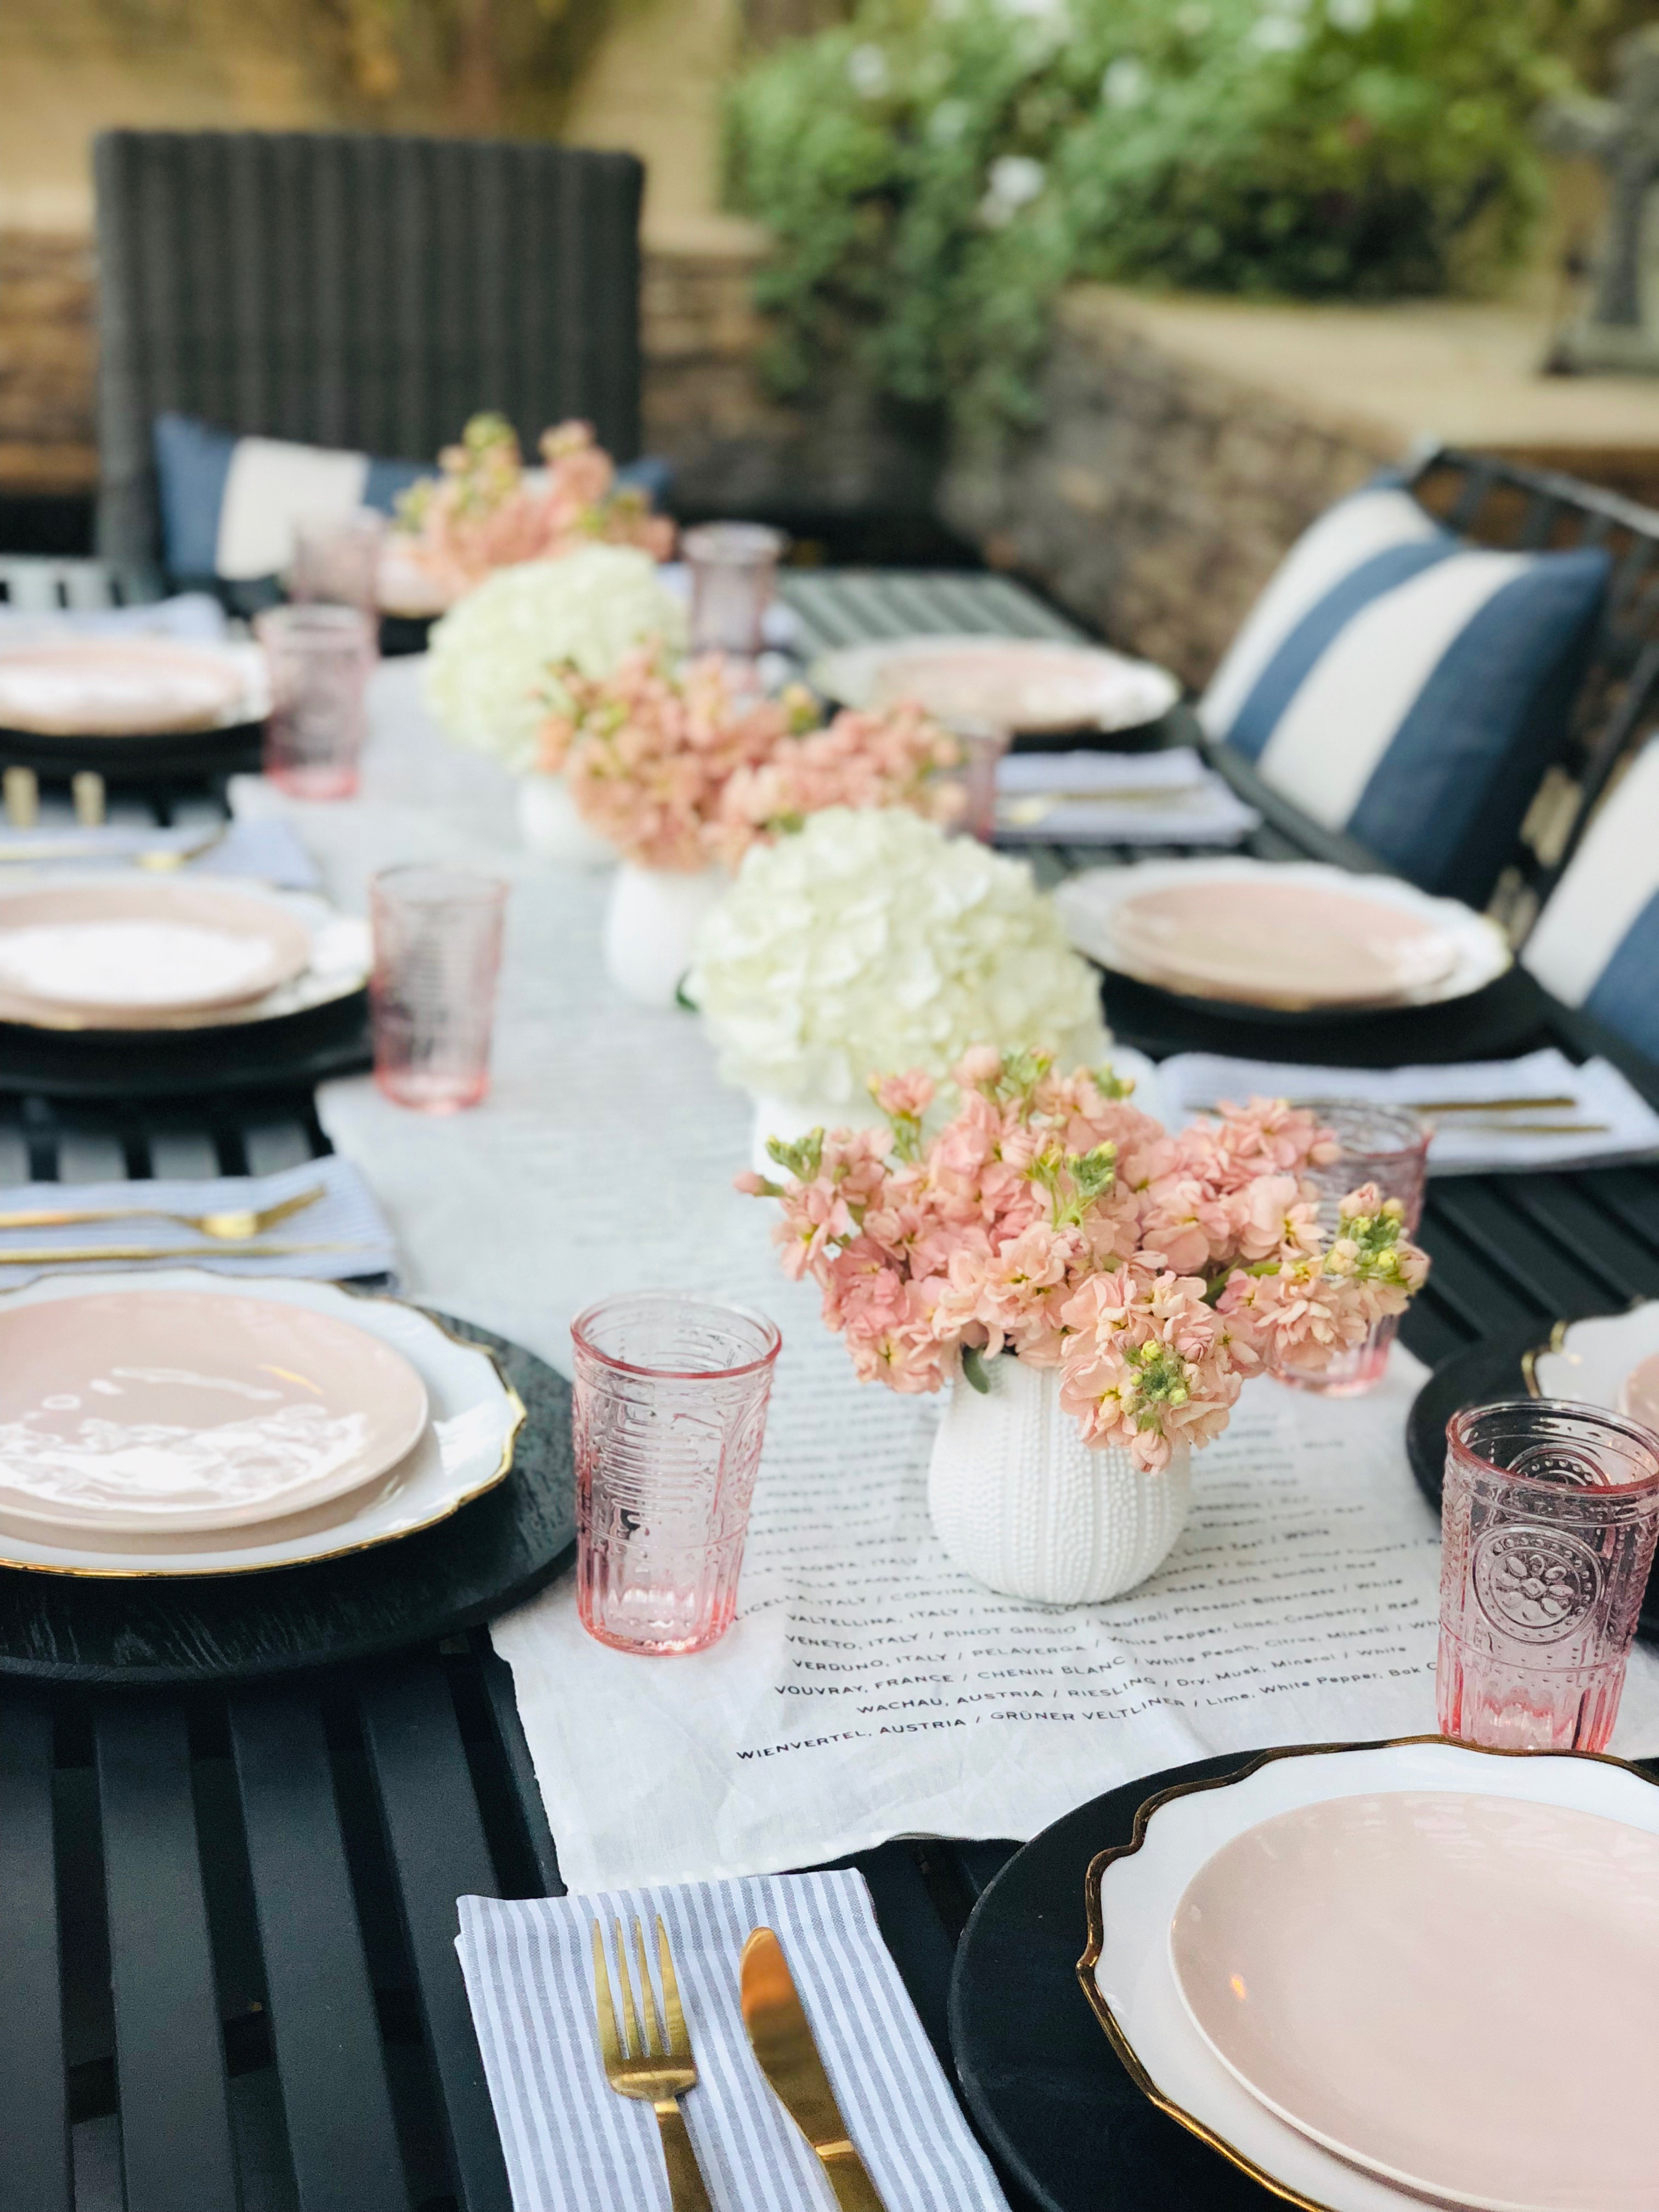 White and Pink Poolside Table: Casual Summer Dining